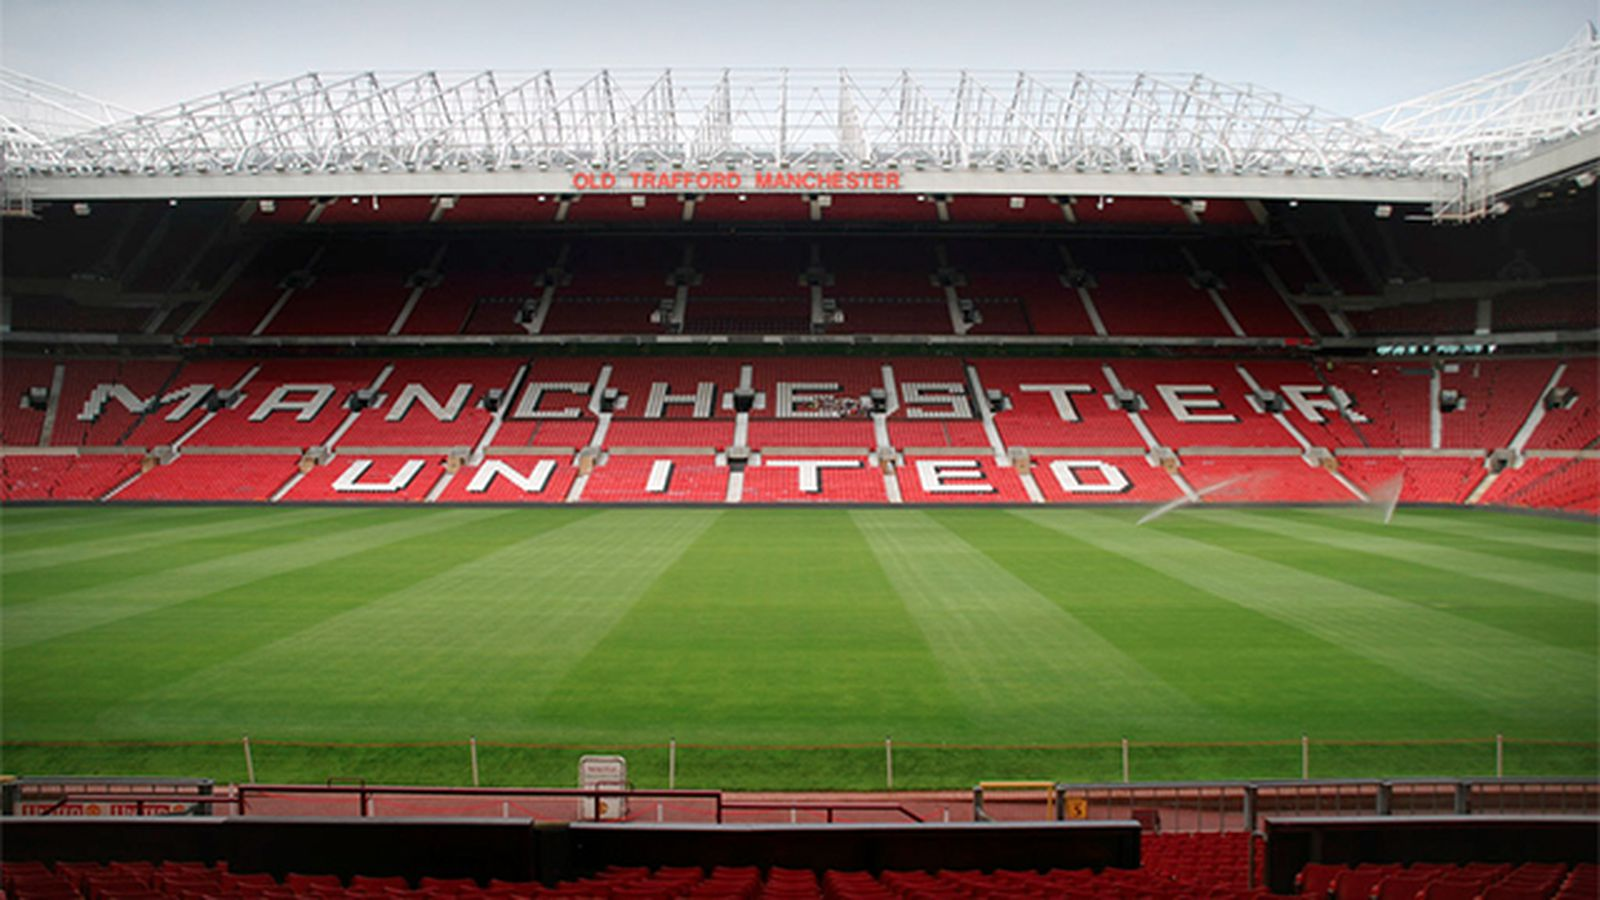 Manchester United's tablet ban brings an end to annoying